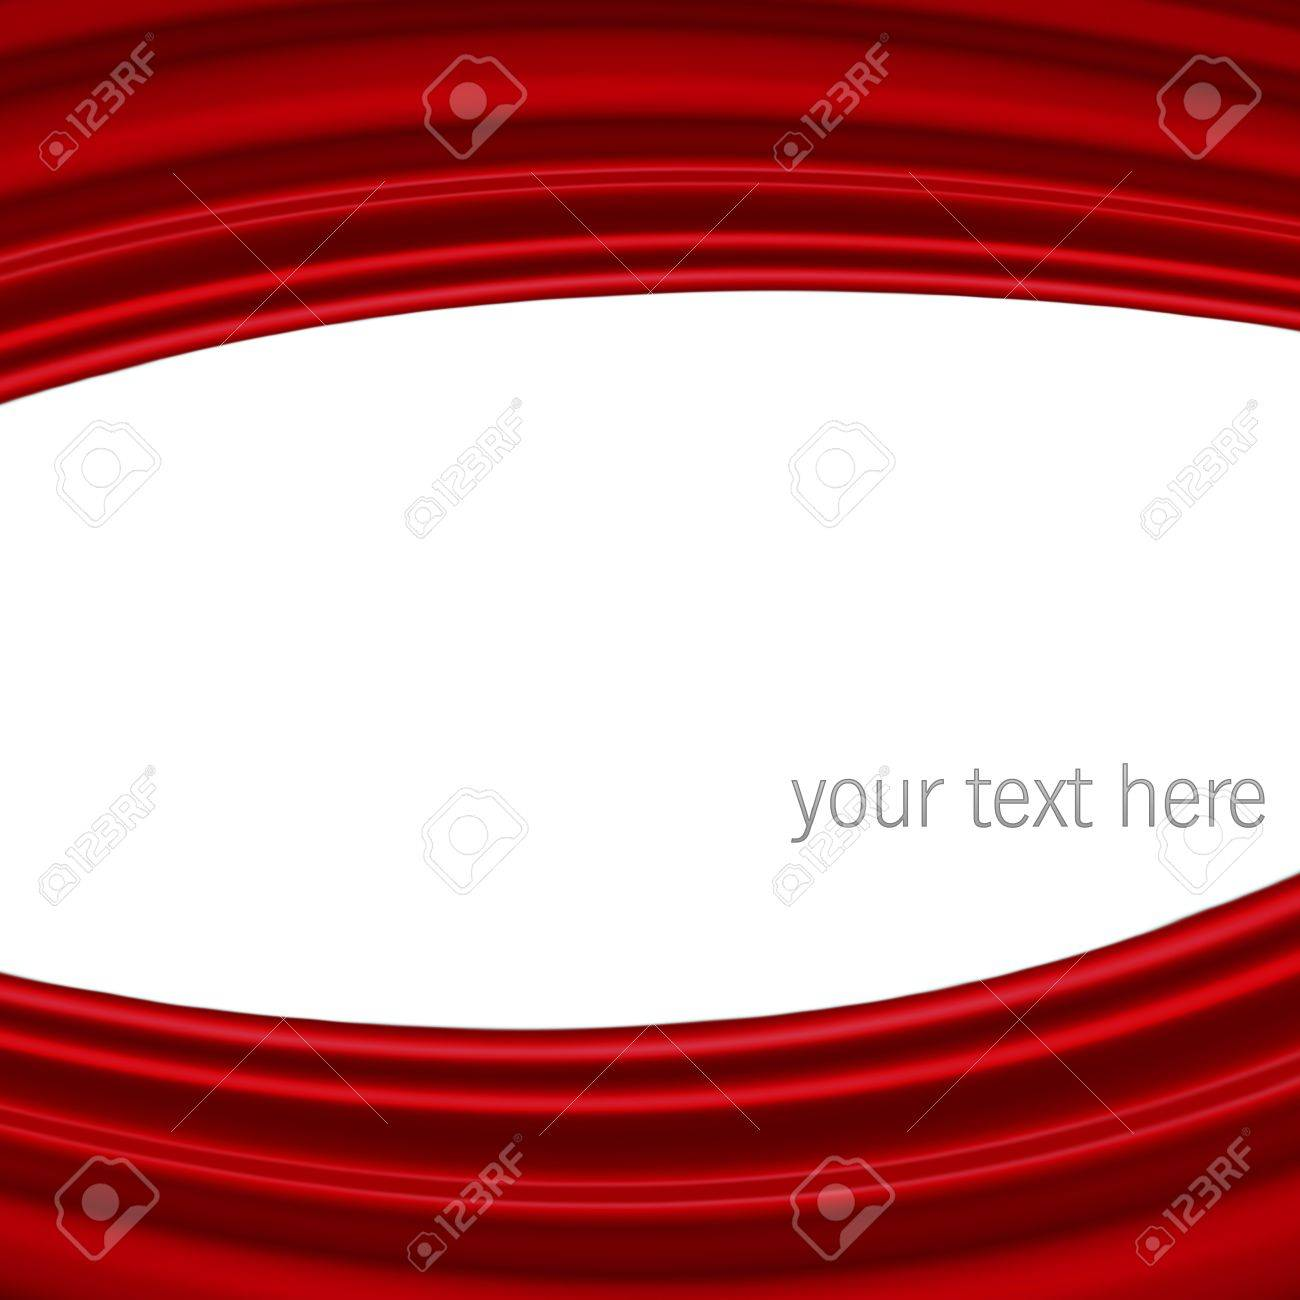 Abstract elegant background design with space for your text Stock Photo - 9394985